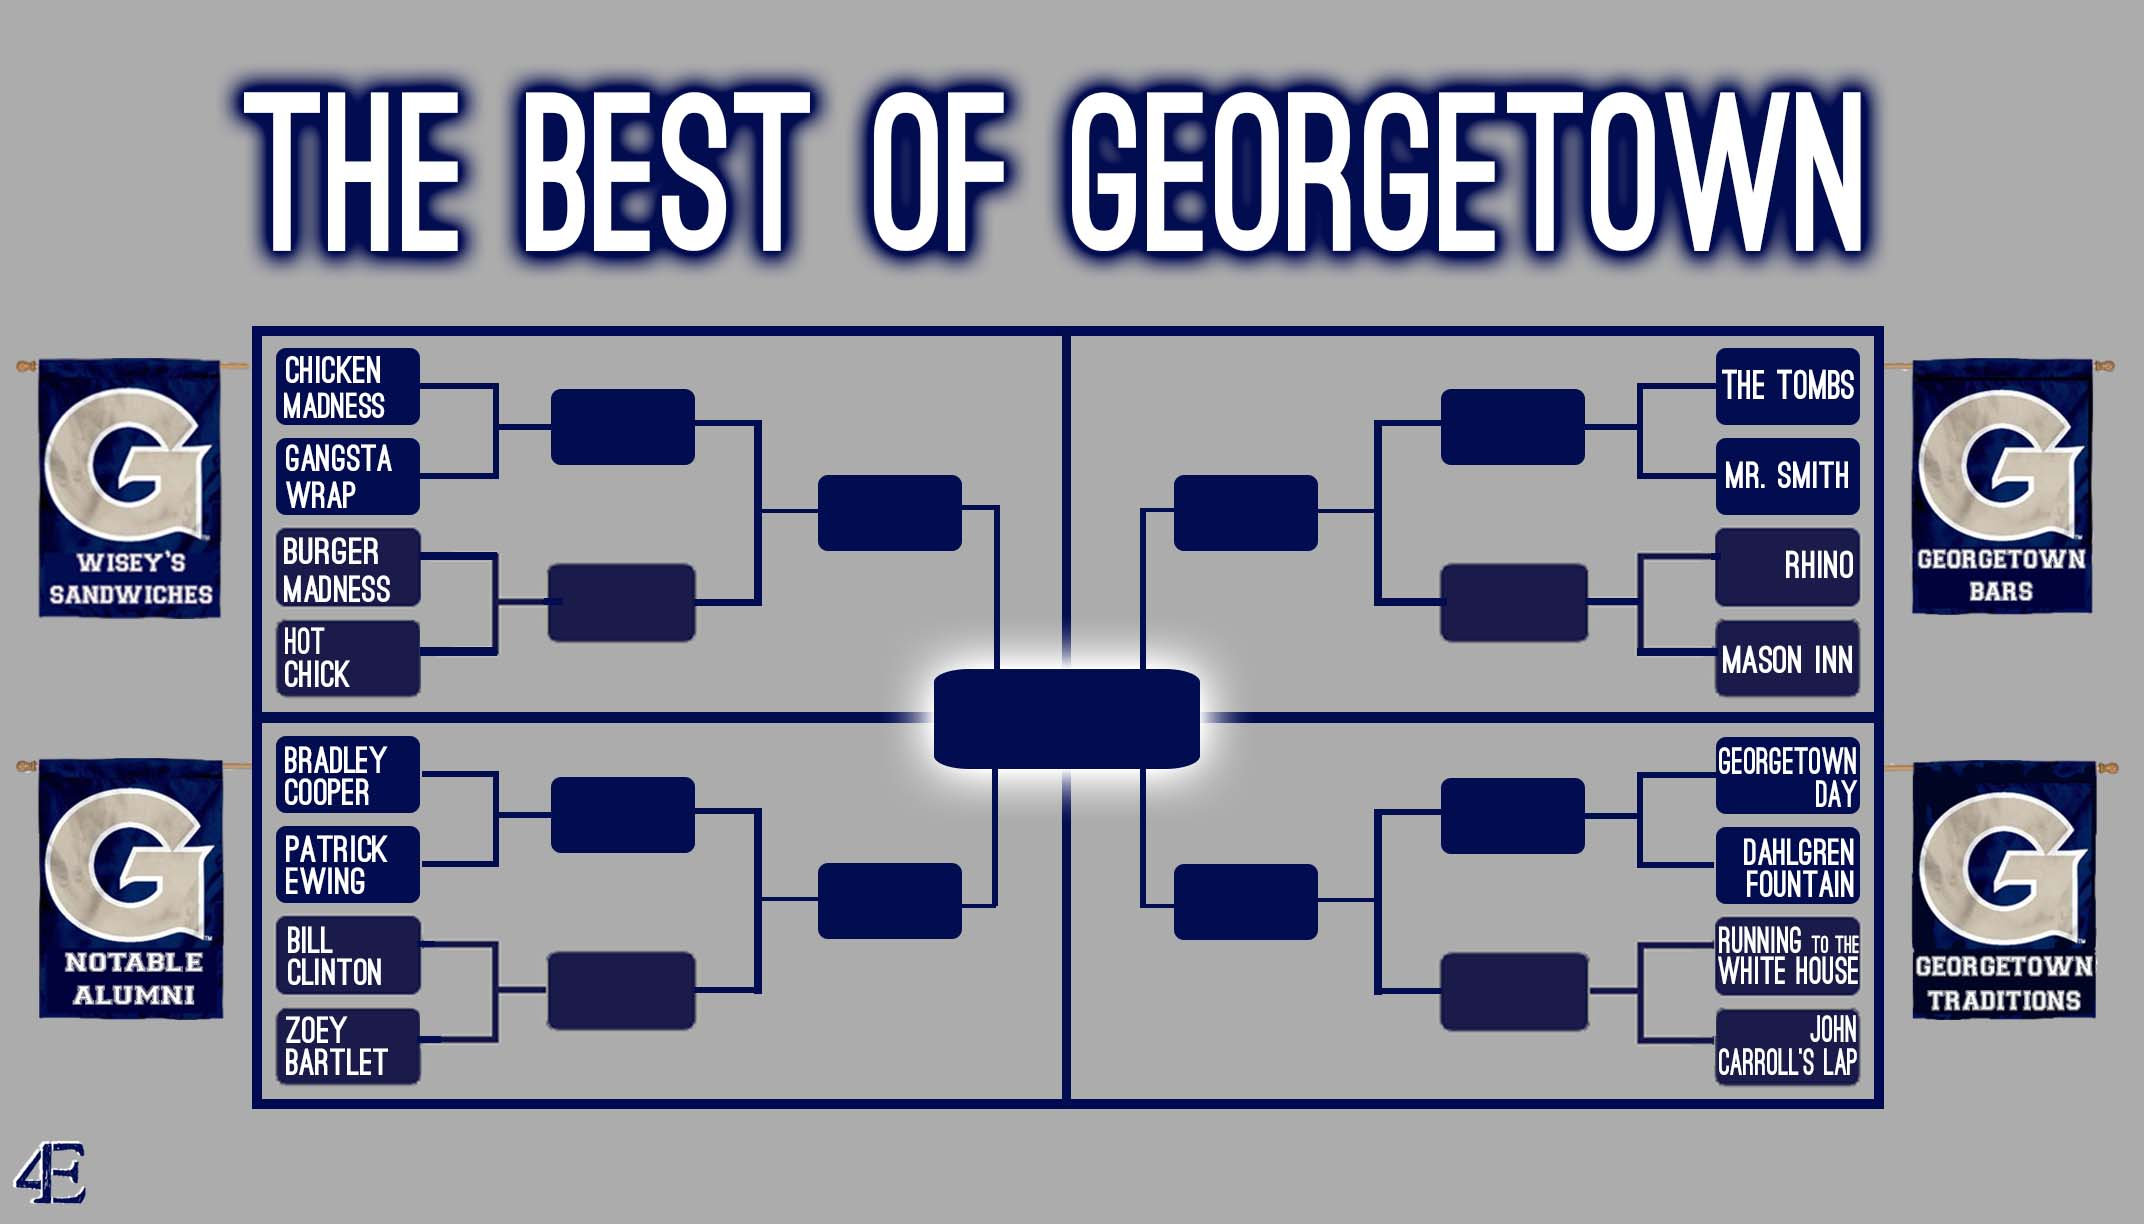 Click the picture to get a better look at the bracket!